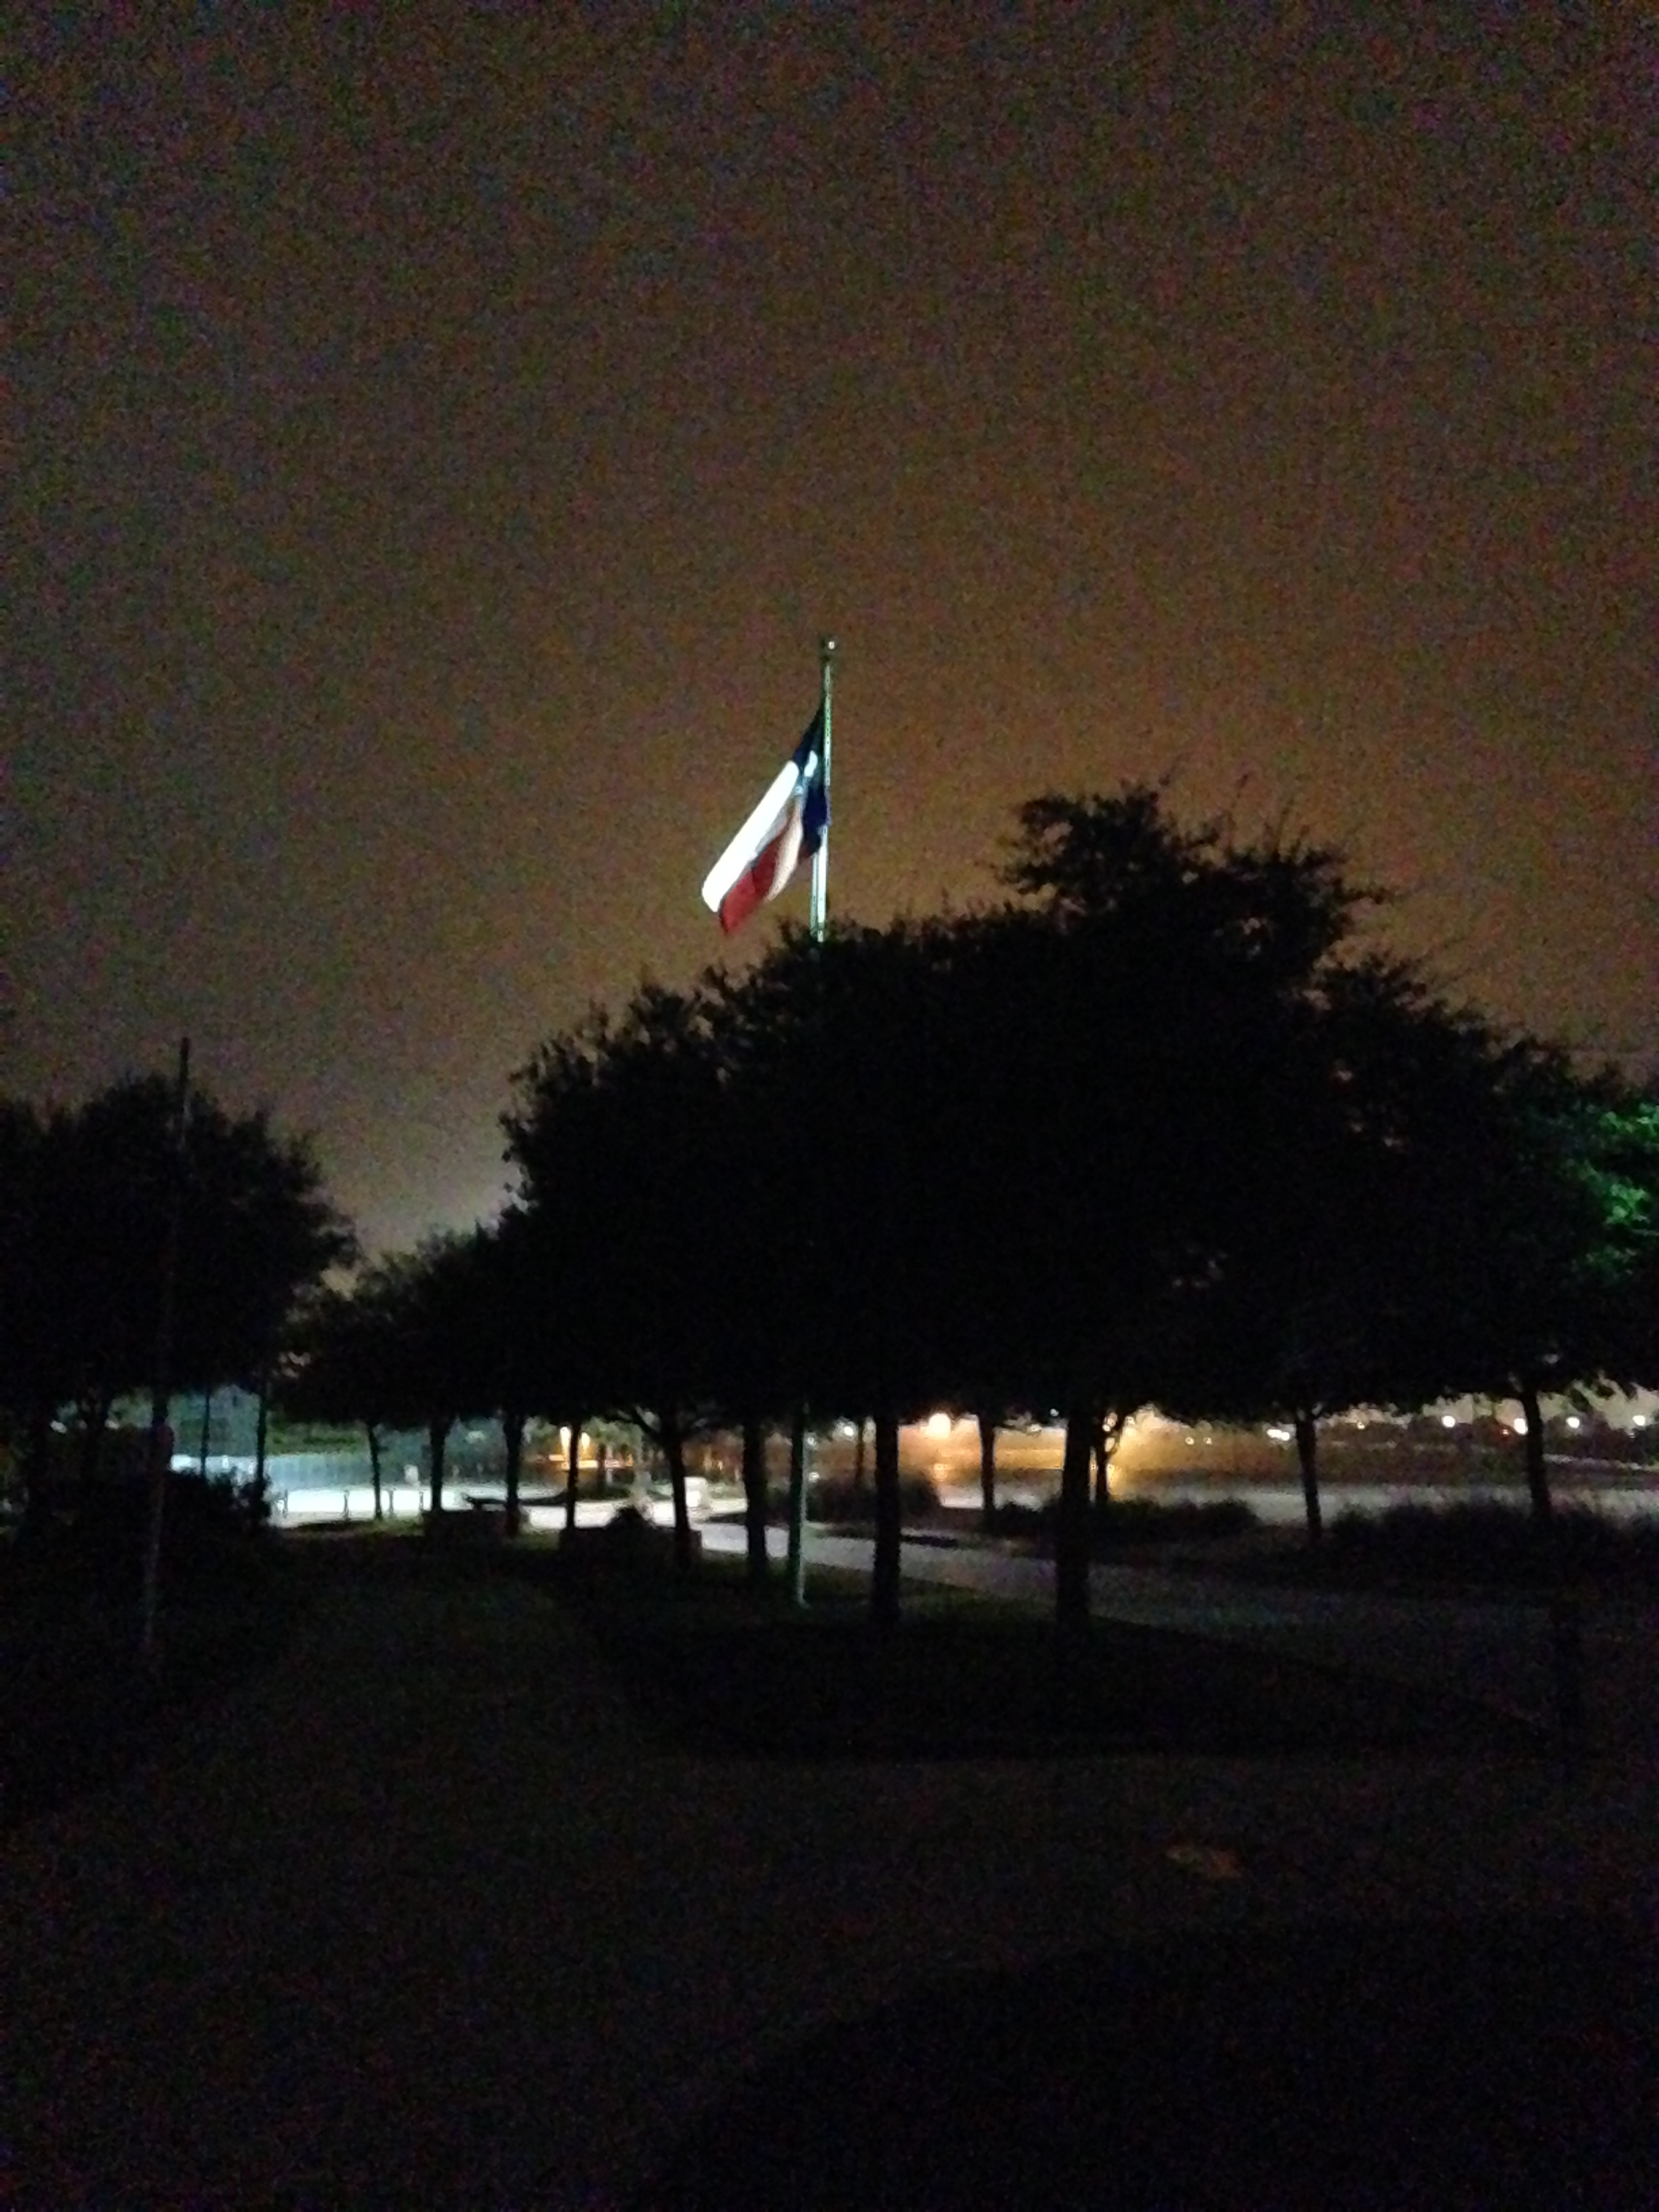 AT&T Center, 4:30am